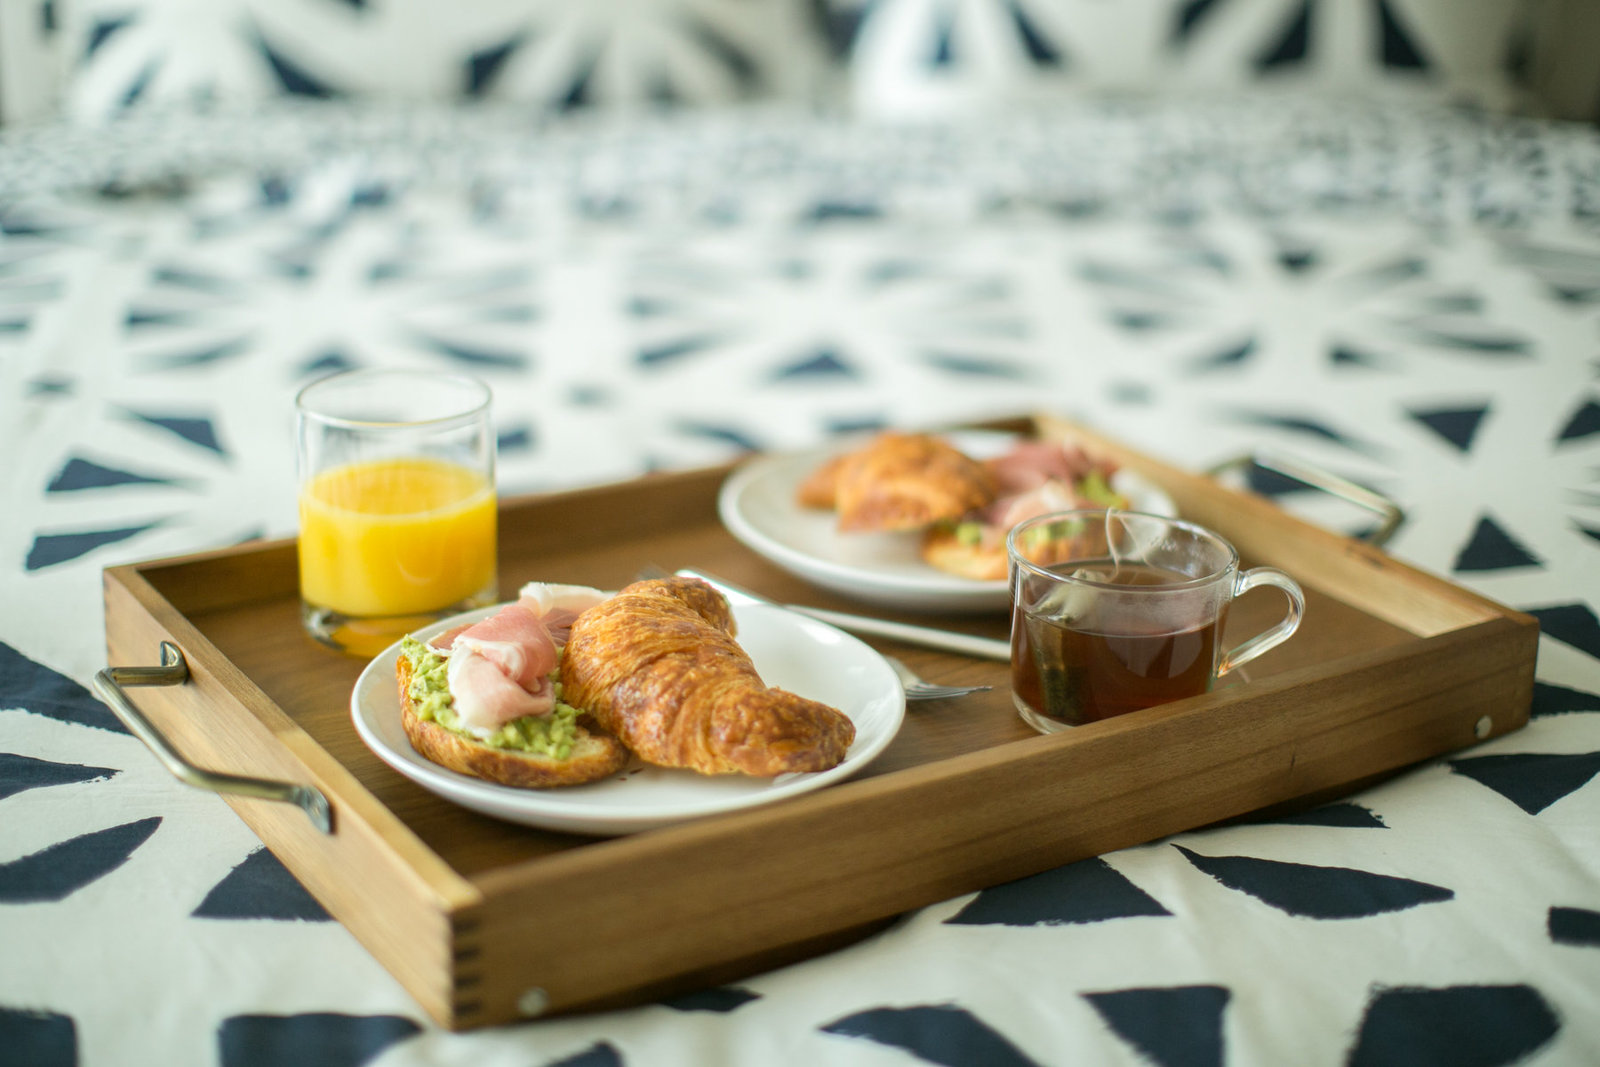 Breakfast-in-bed-artphotosoul-photographers-1